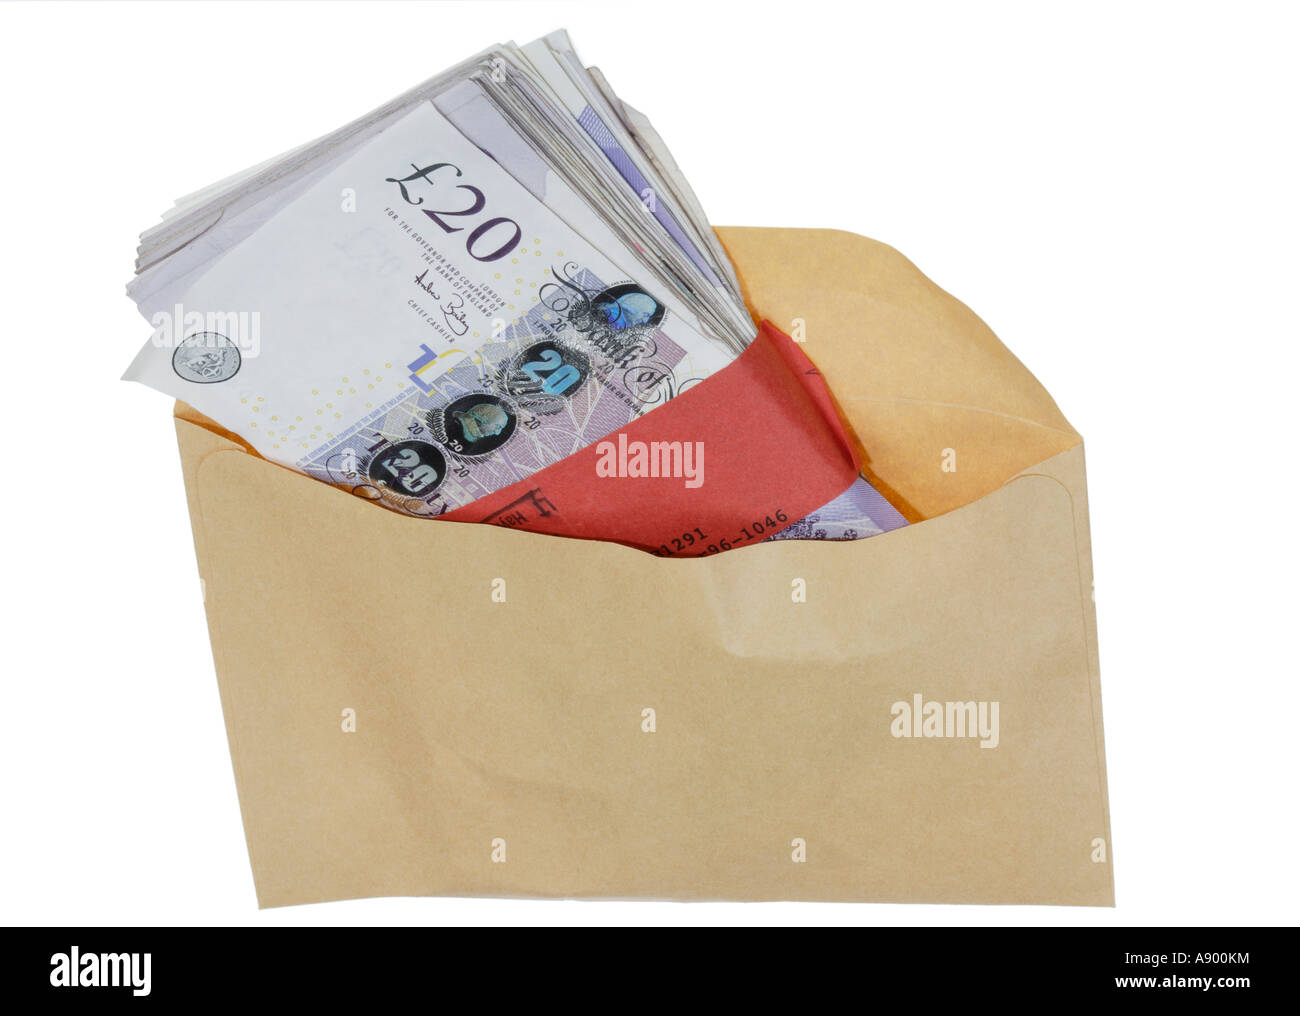 Cash and a brown envelope Used notes - Stock Image